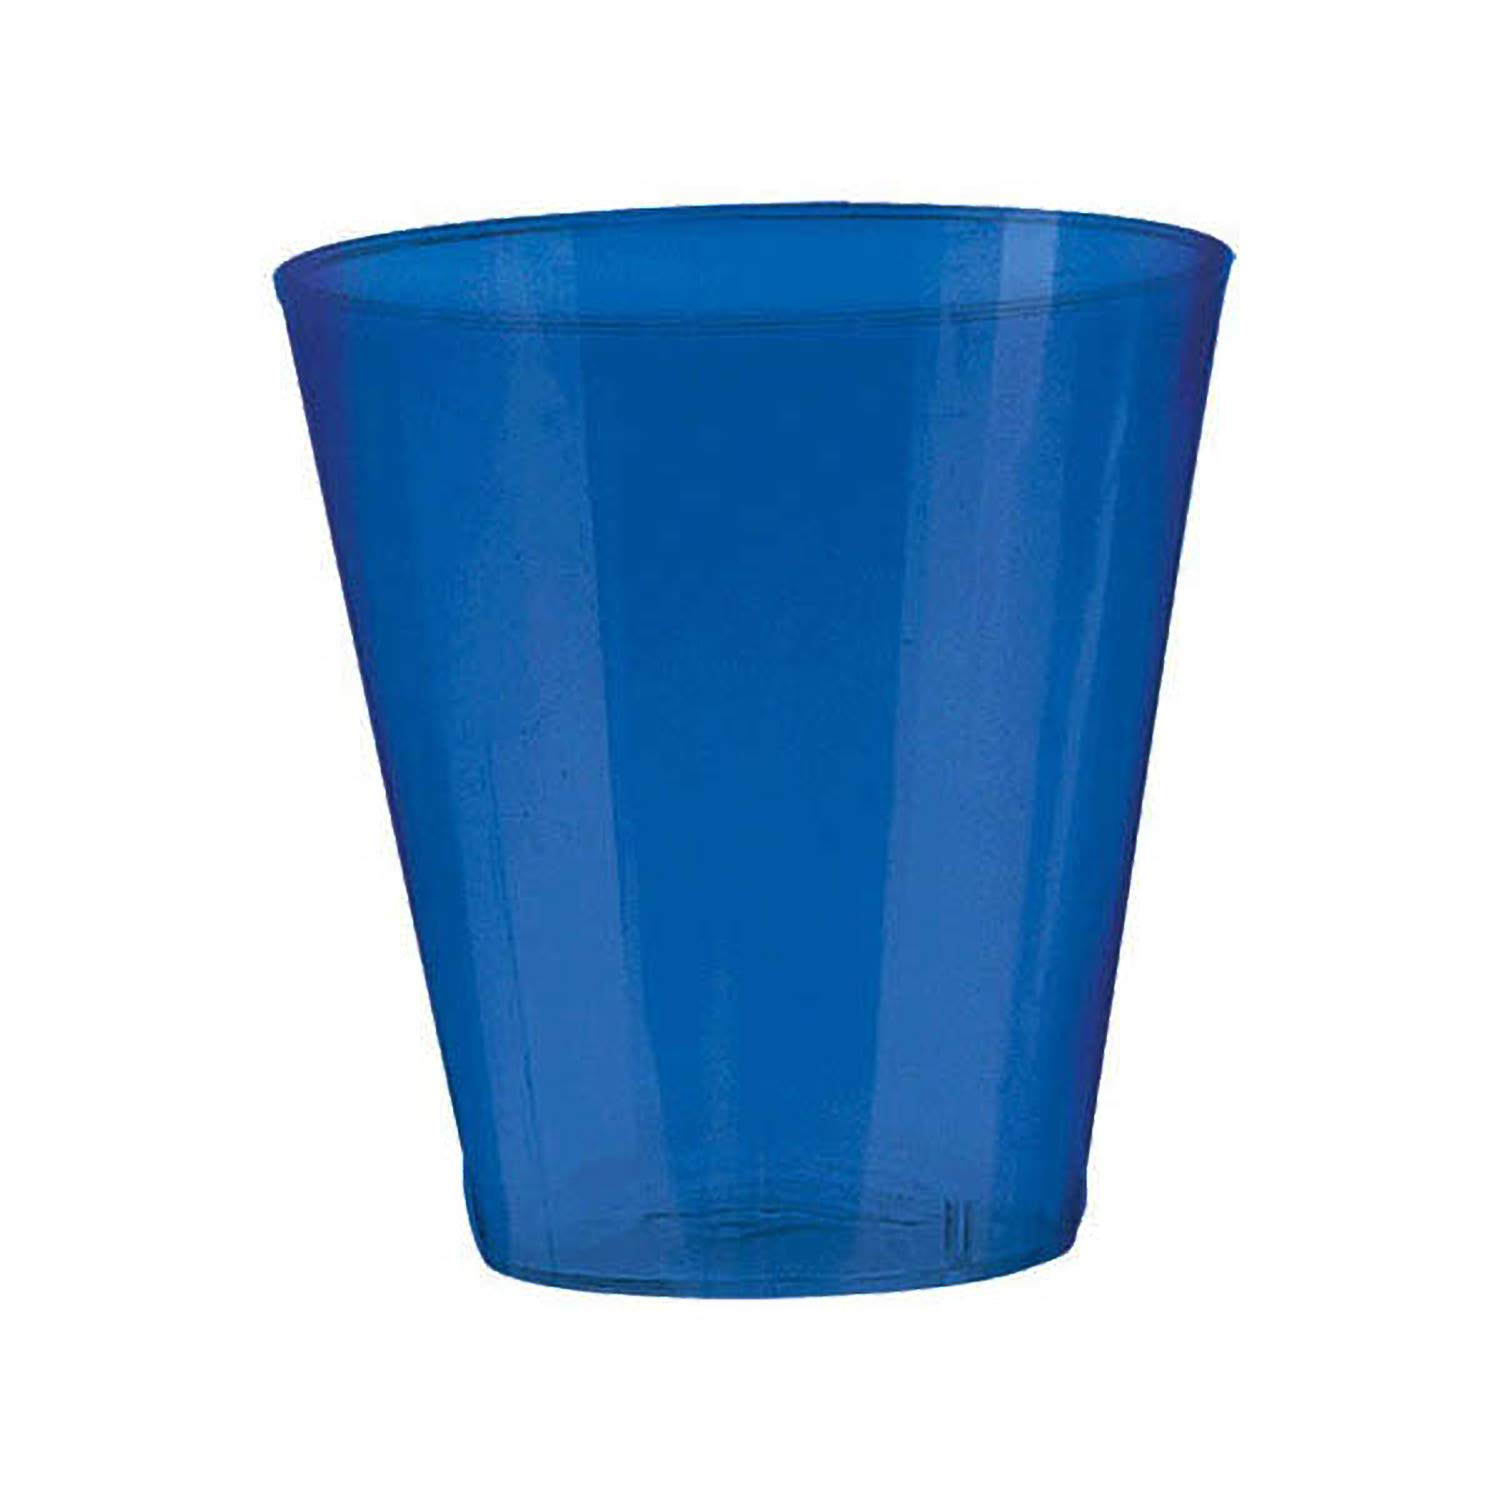 Big Party Pack Bright Royal Blue Shot Glasses | 2 oz. | Party Supply | 600 ct. by Amscan (Image #1)